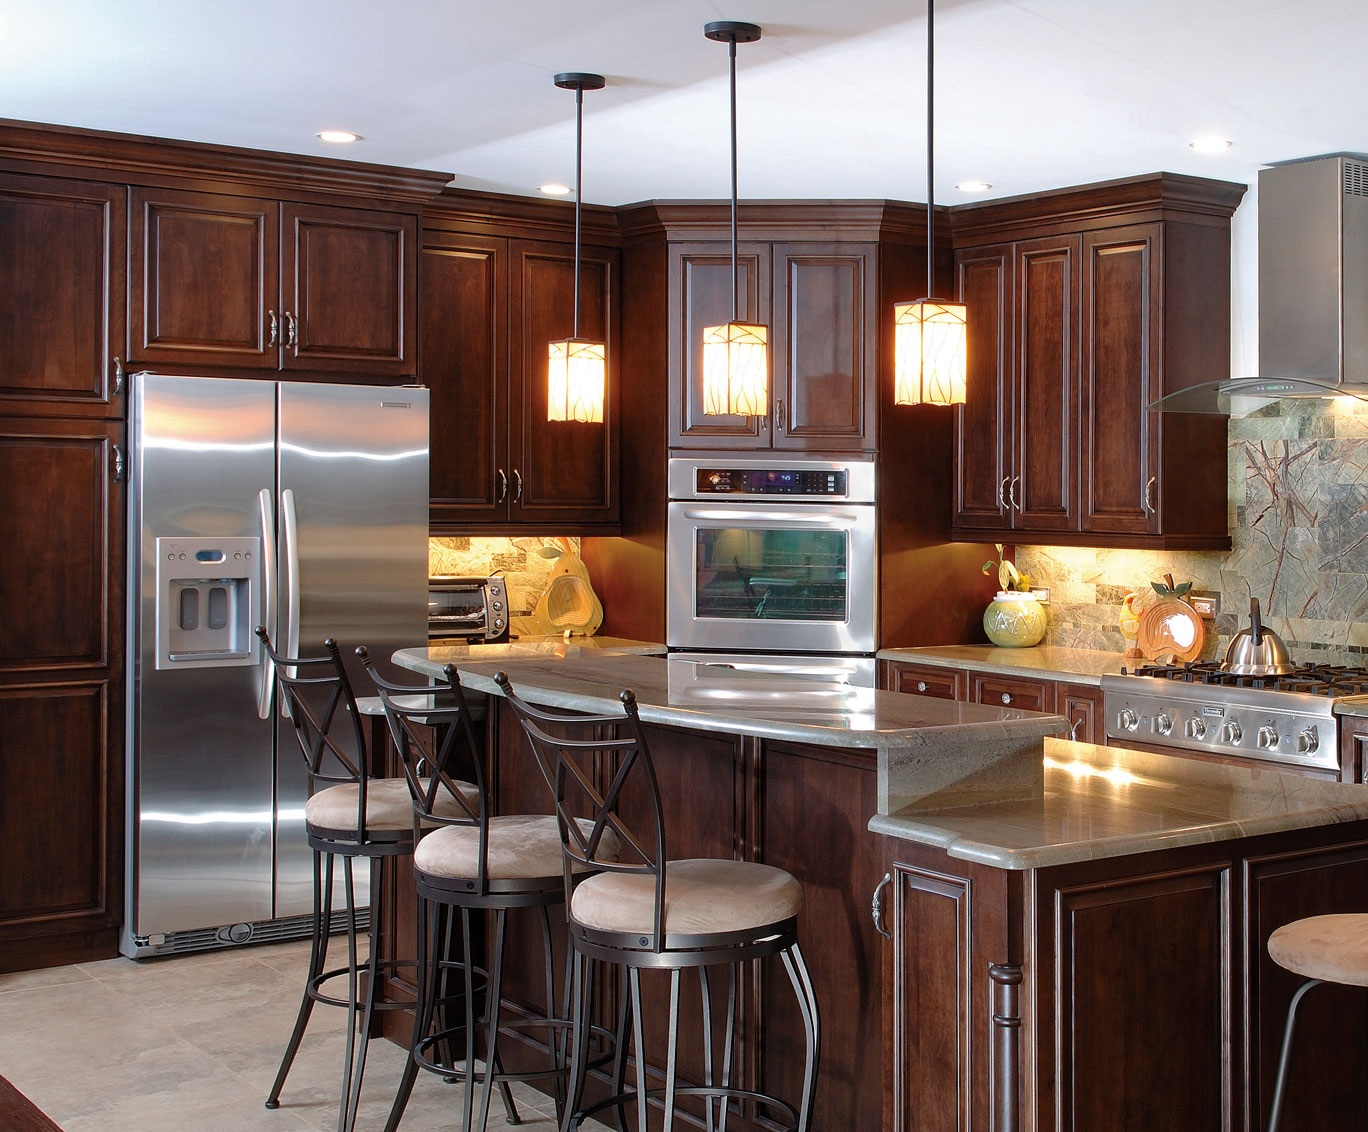 Kitchen Cabinet Guide Prices Materials Installations Repairs kitchen cabinets prices